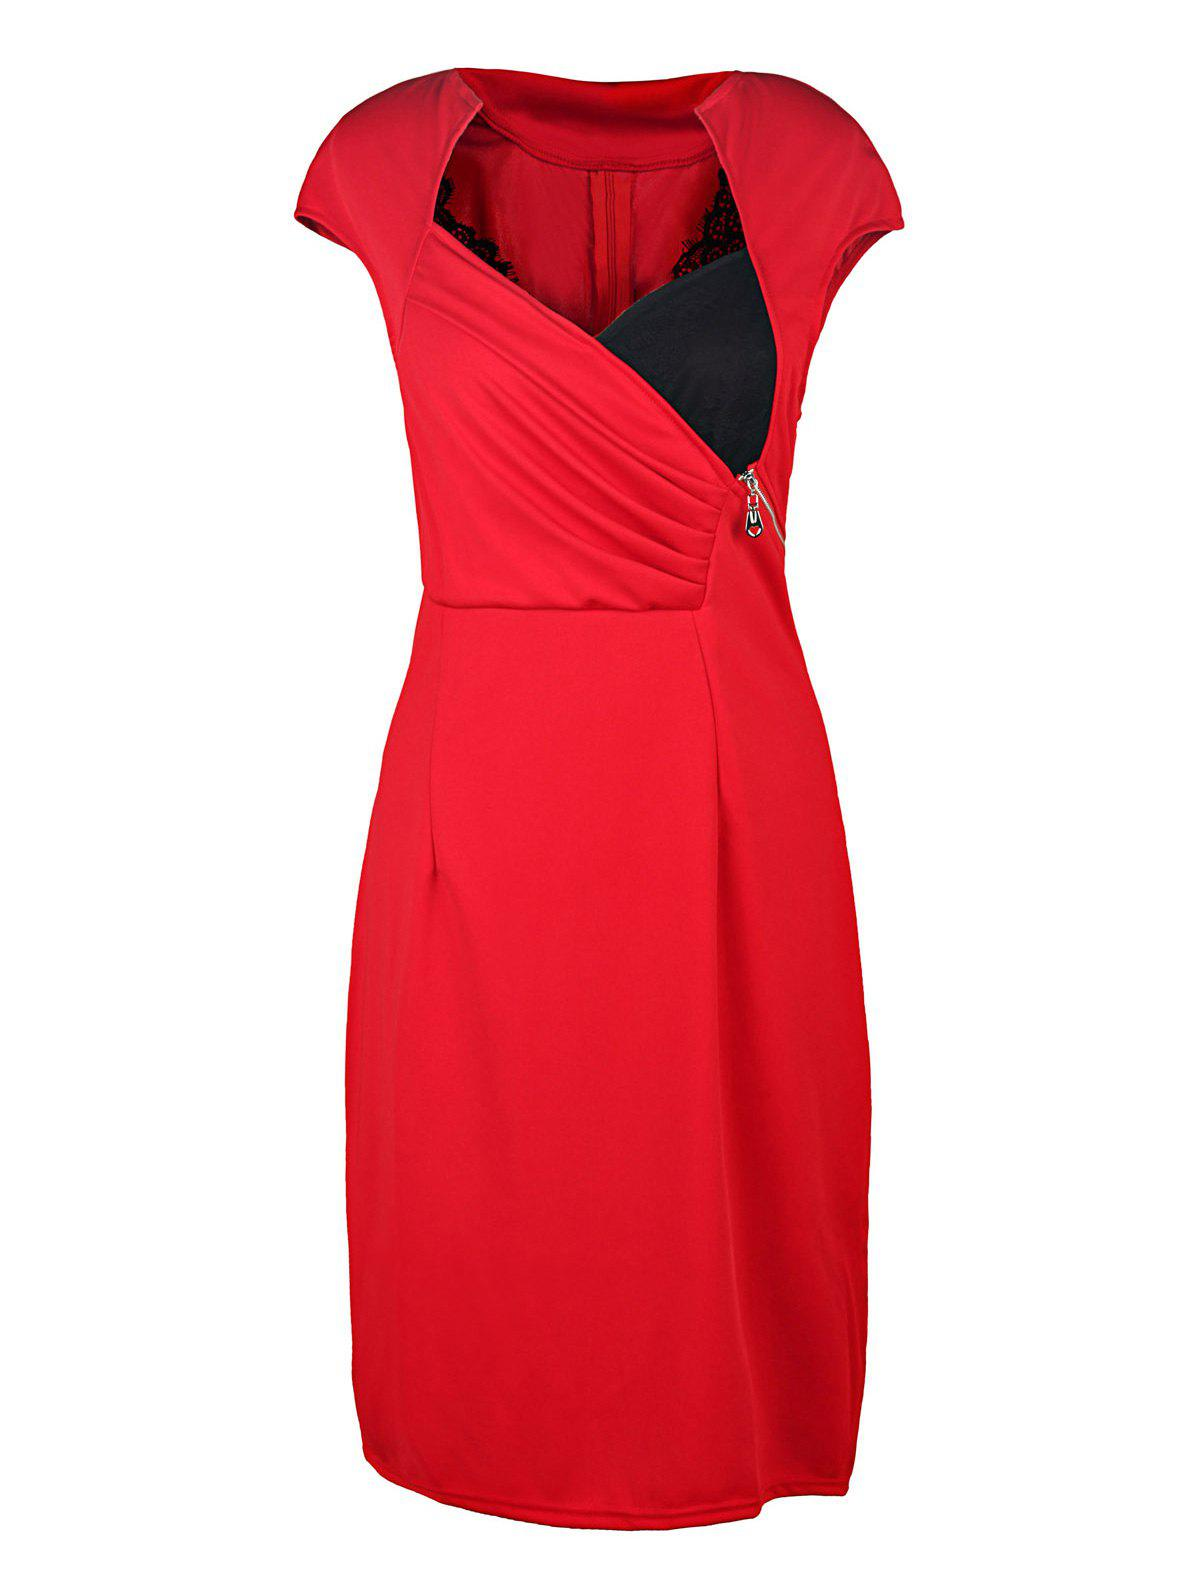 Sexy Stand-Up Collar Short Sleeve Bodycon Spliced Women's Dress - RED S